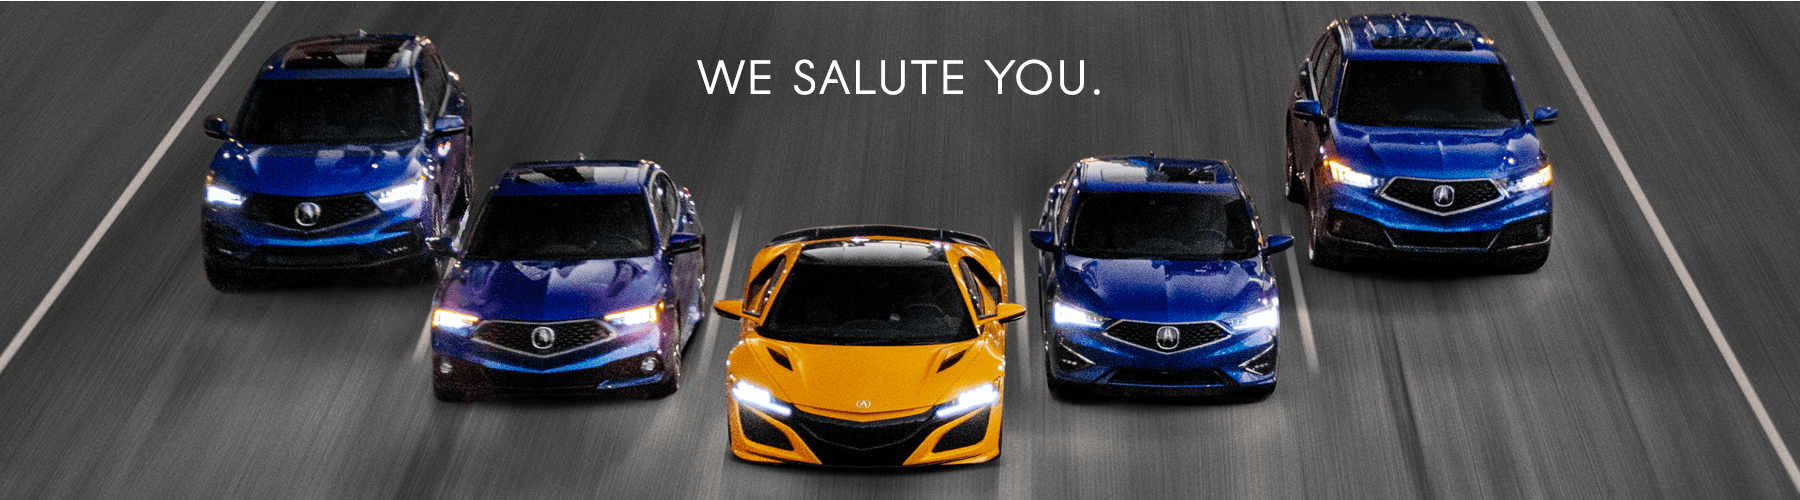 Acura Military Appreciation Offer We Salute You Banner